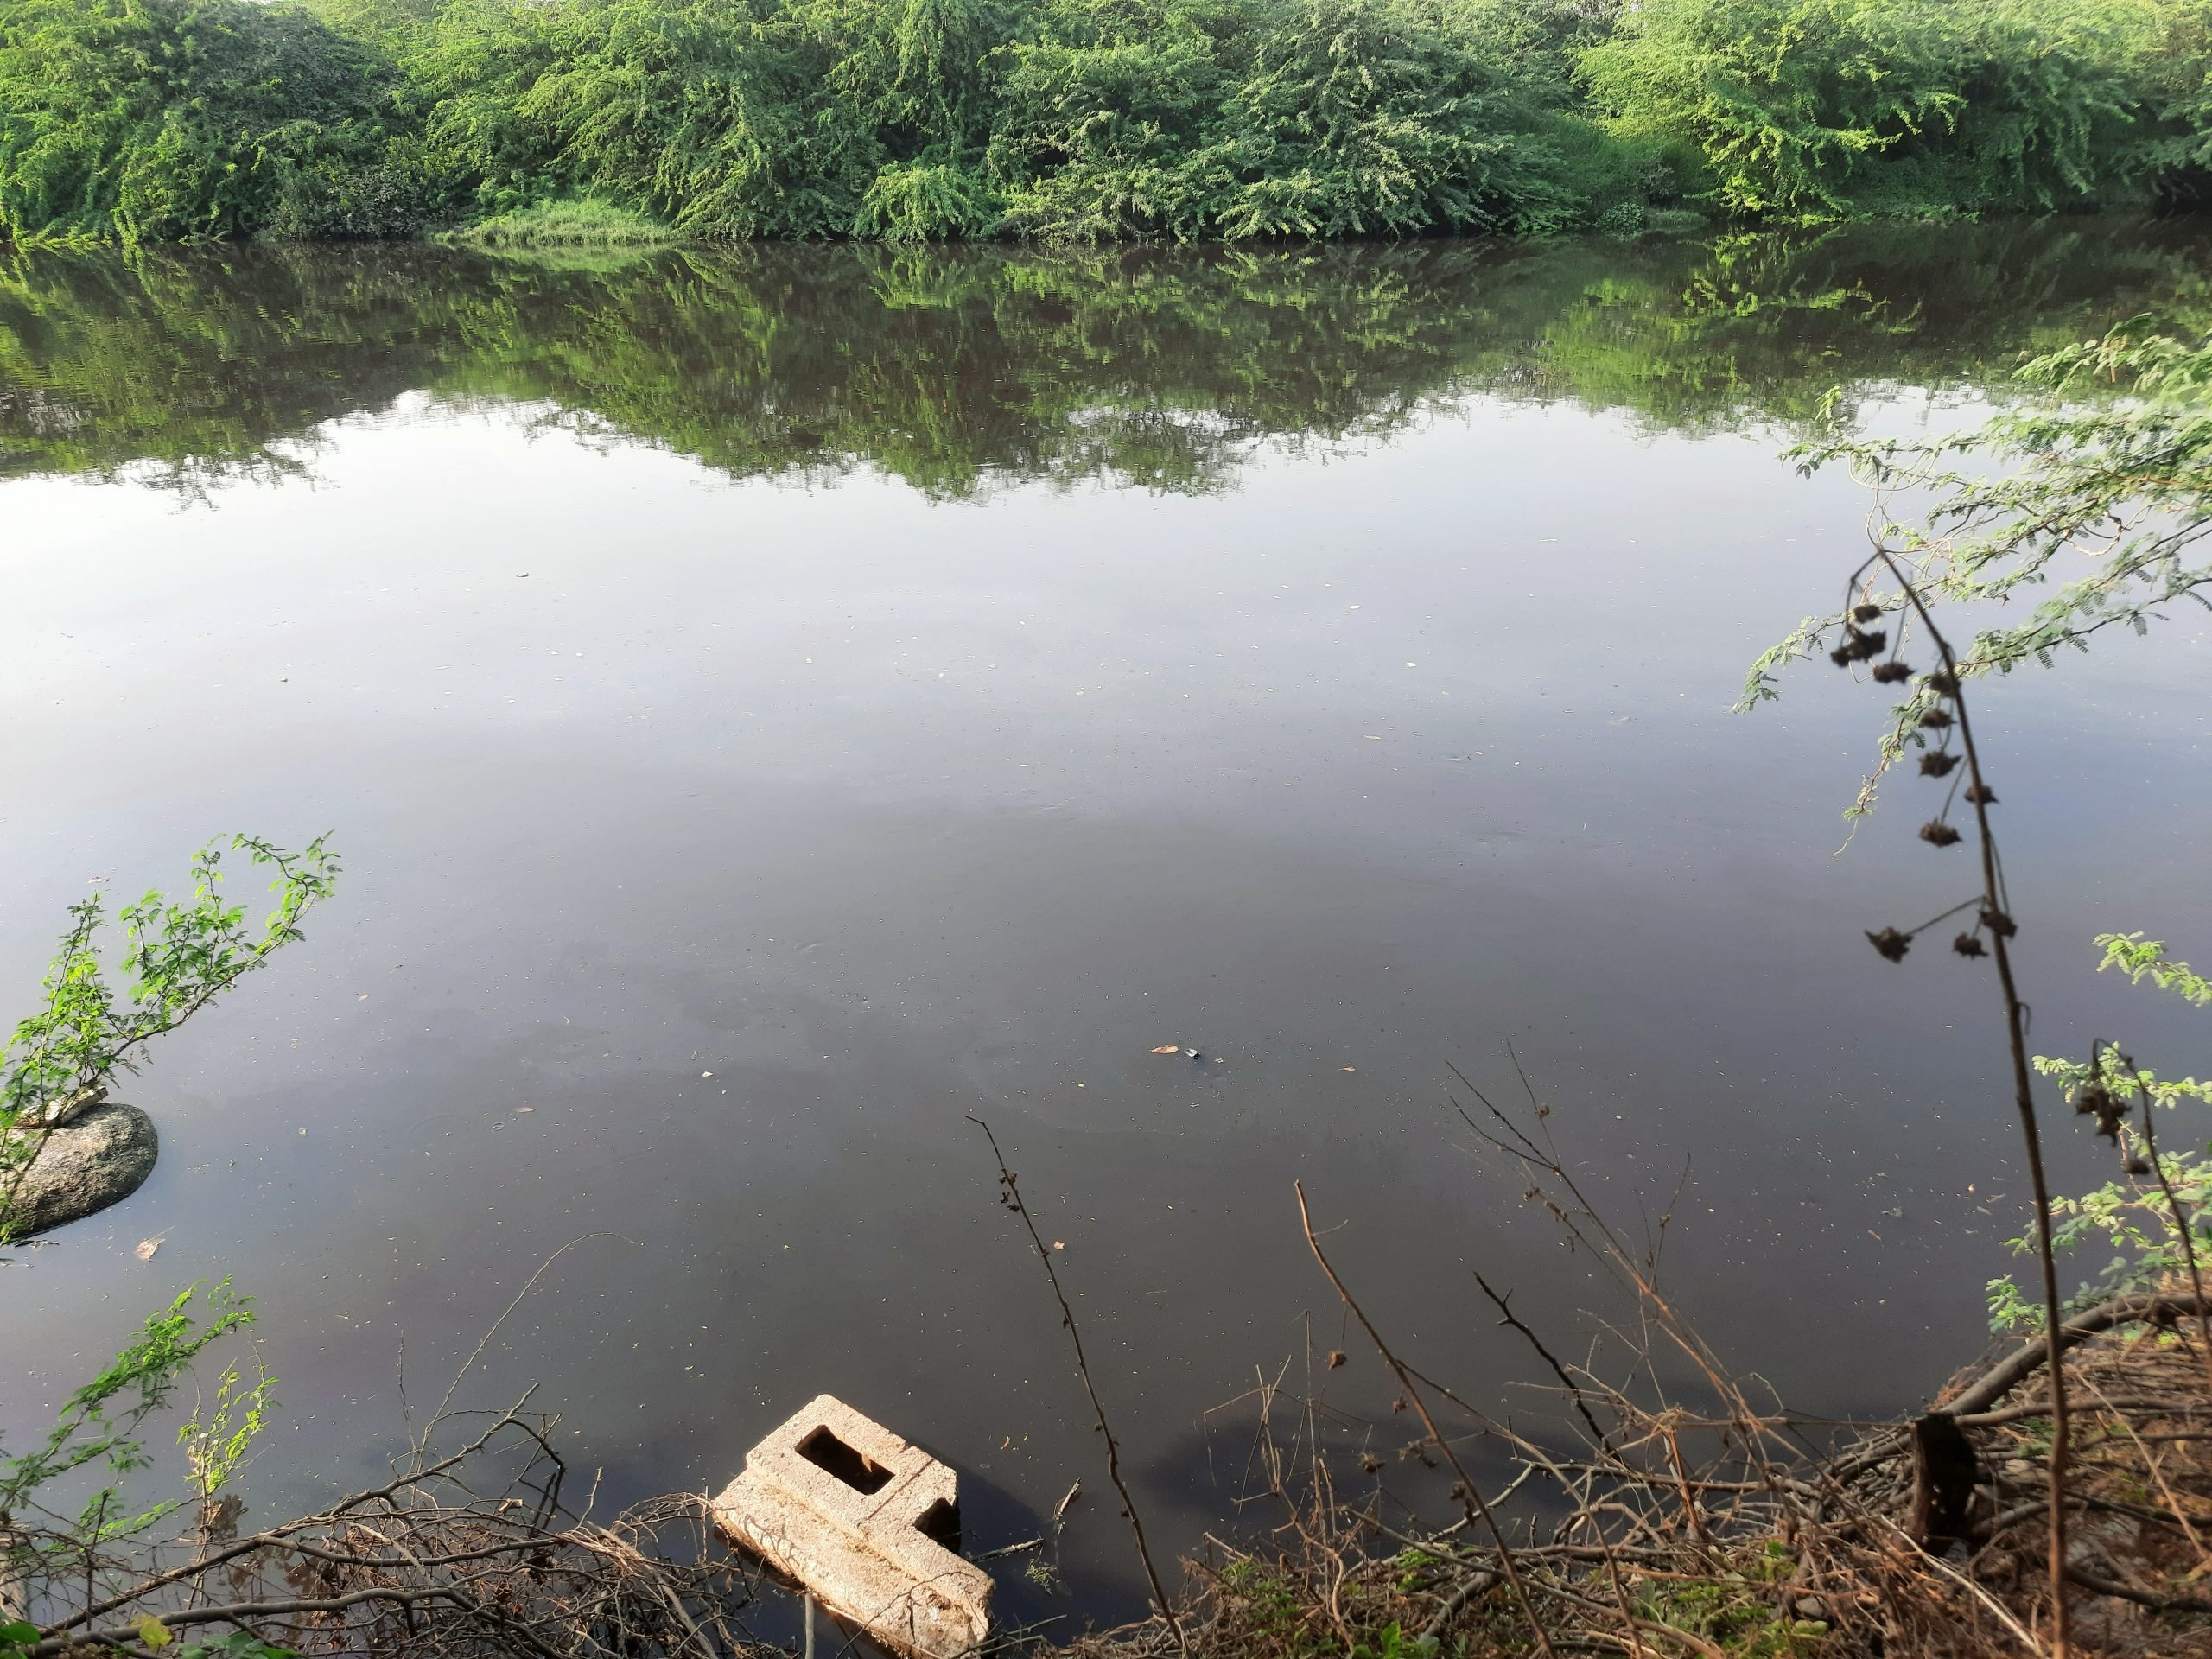 Polluted lake in the forest